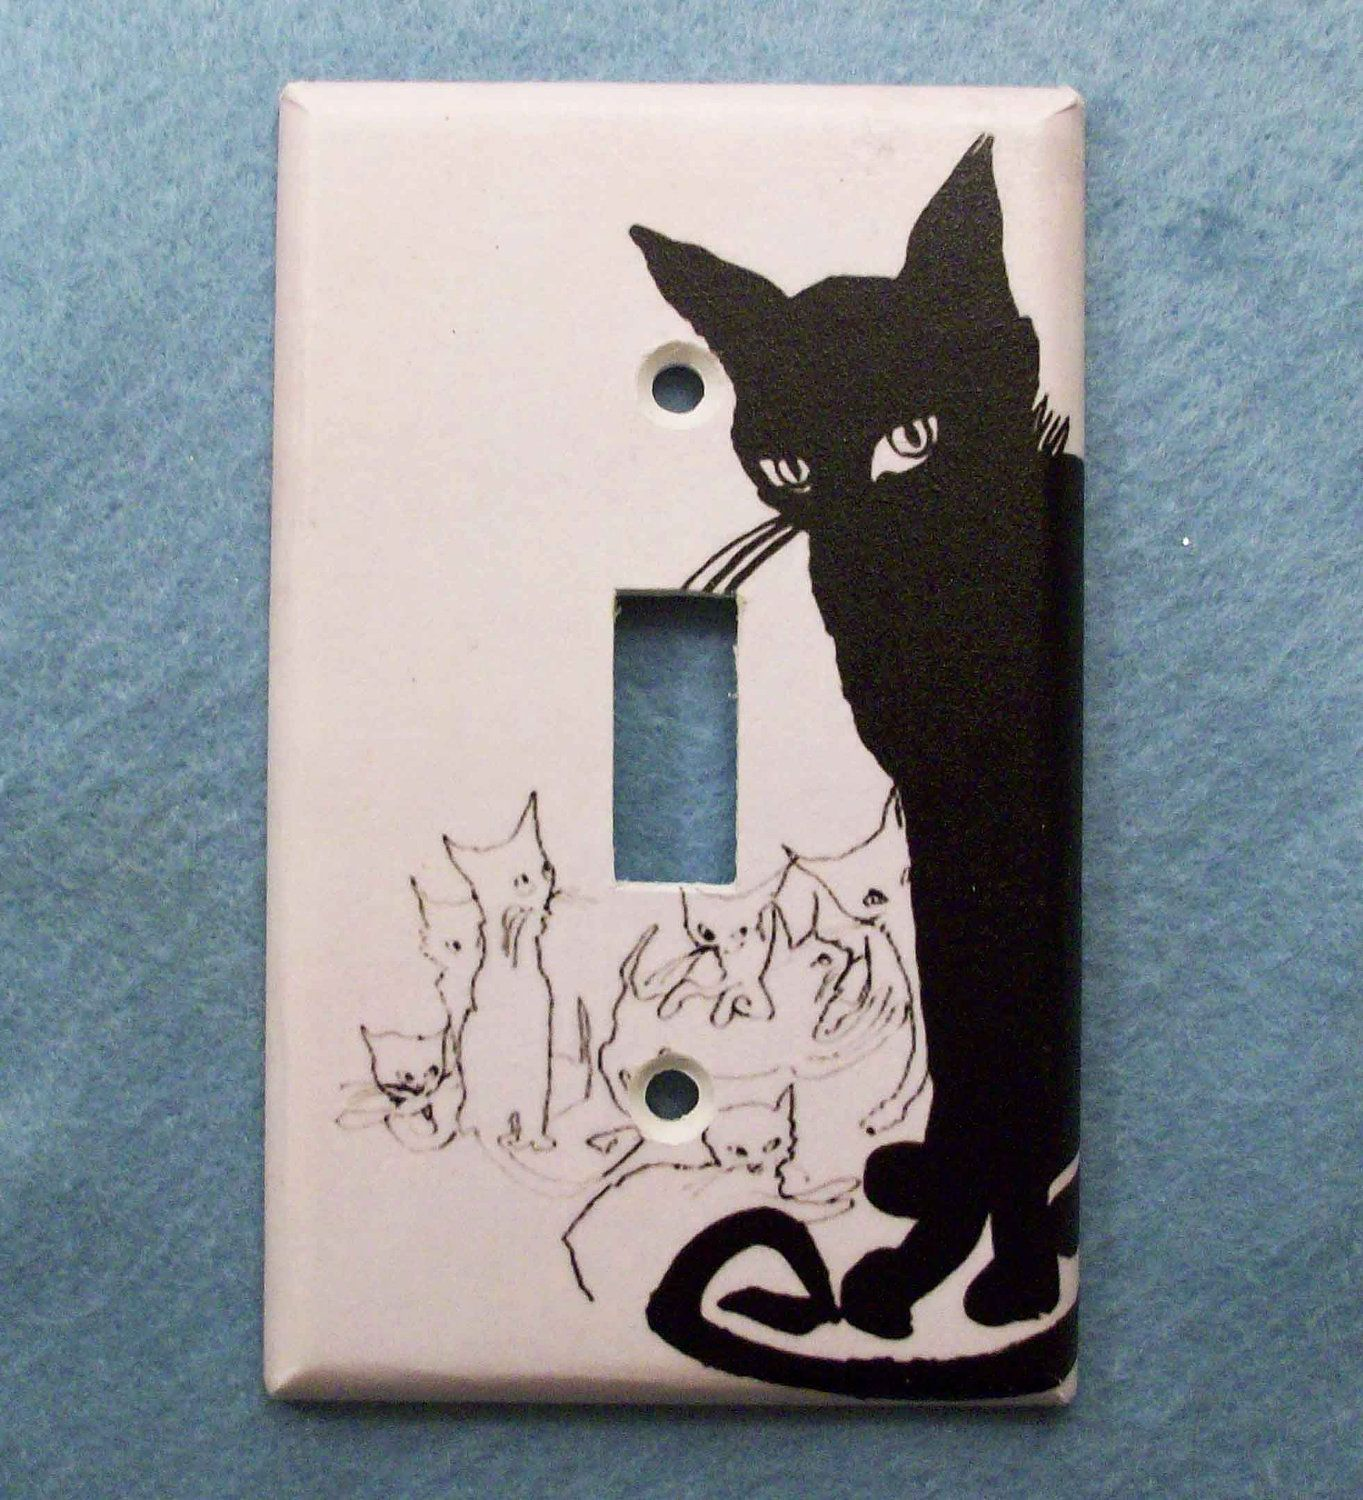 Light switch plate covers decorative - Retro Black Cat Light Switch Cover Switchplate Switch Plate 6 00 Via Etsy